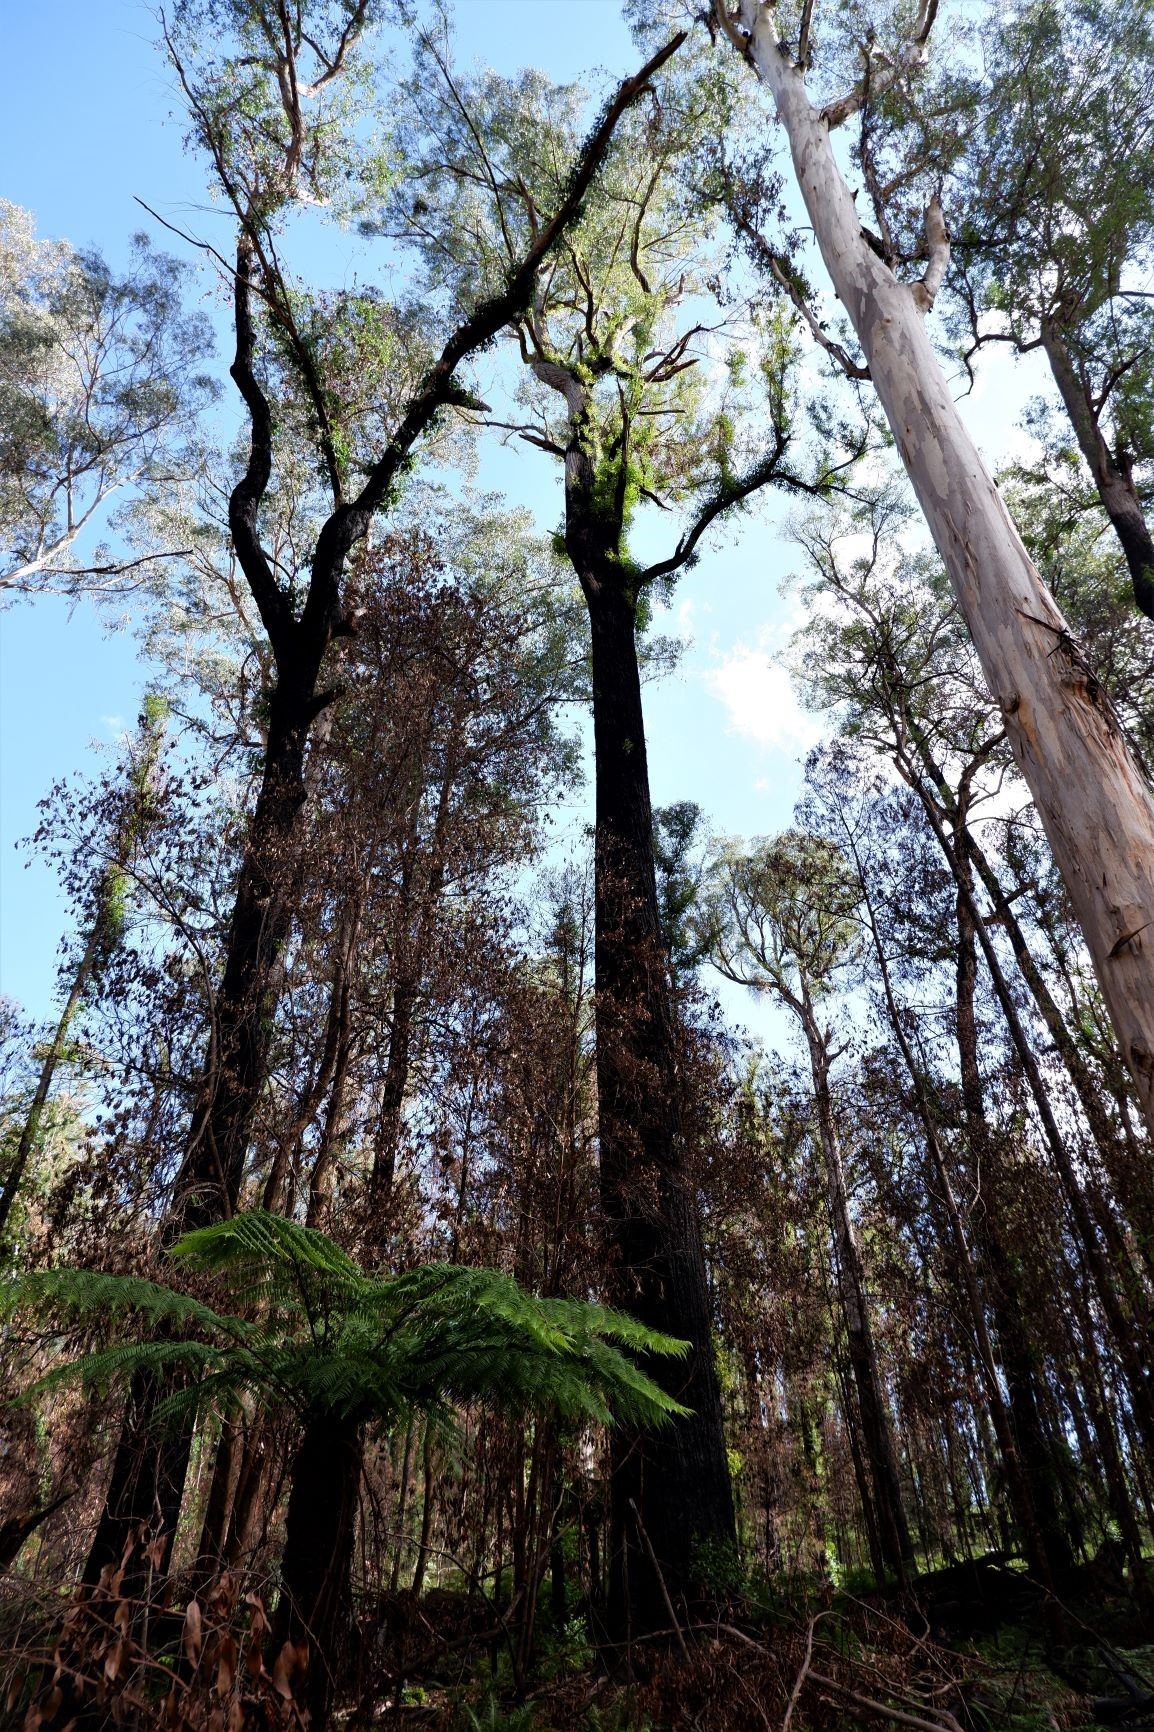 Fire damaged forests in East Gippsland scheduled for logging